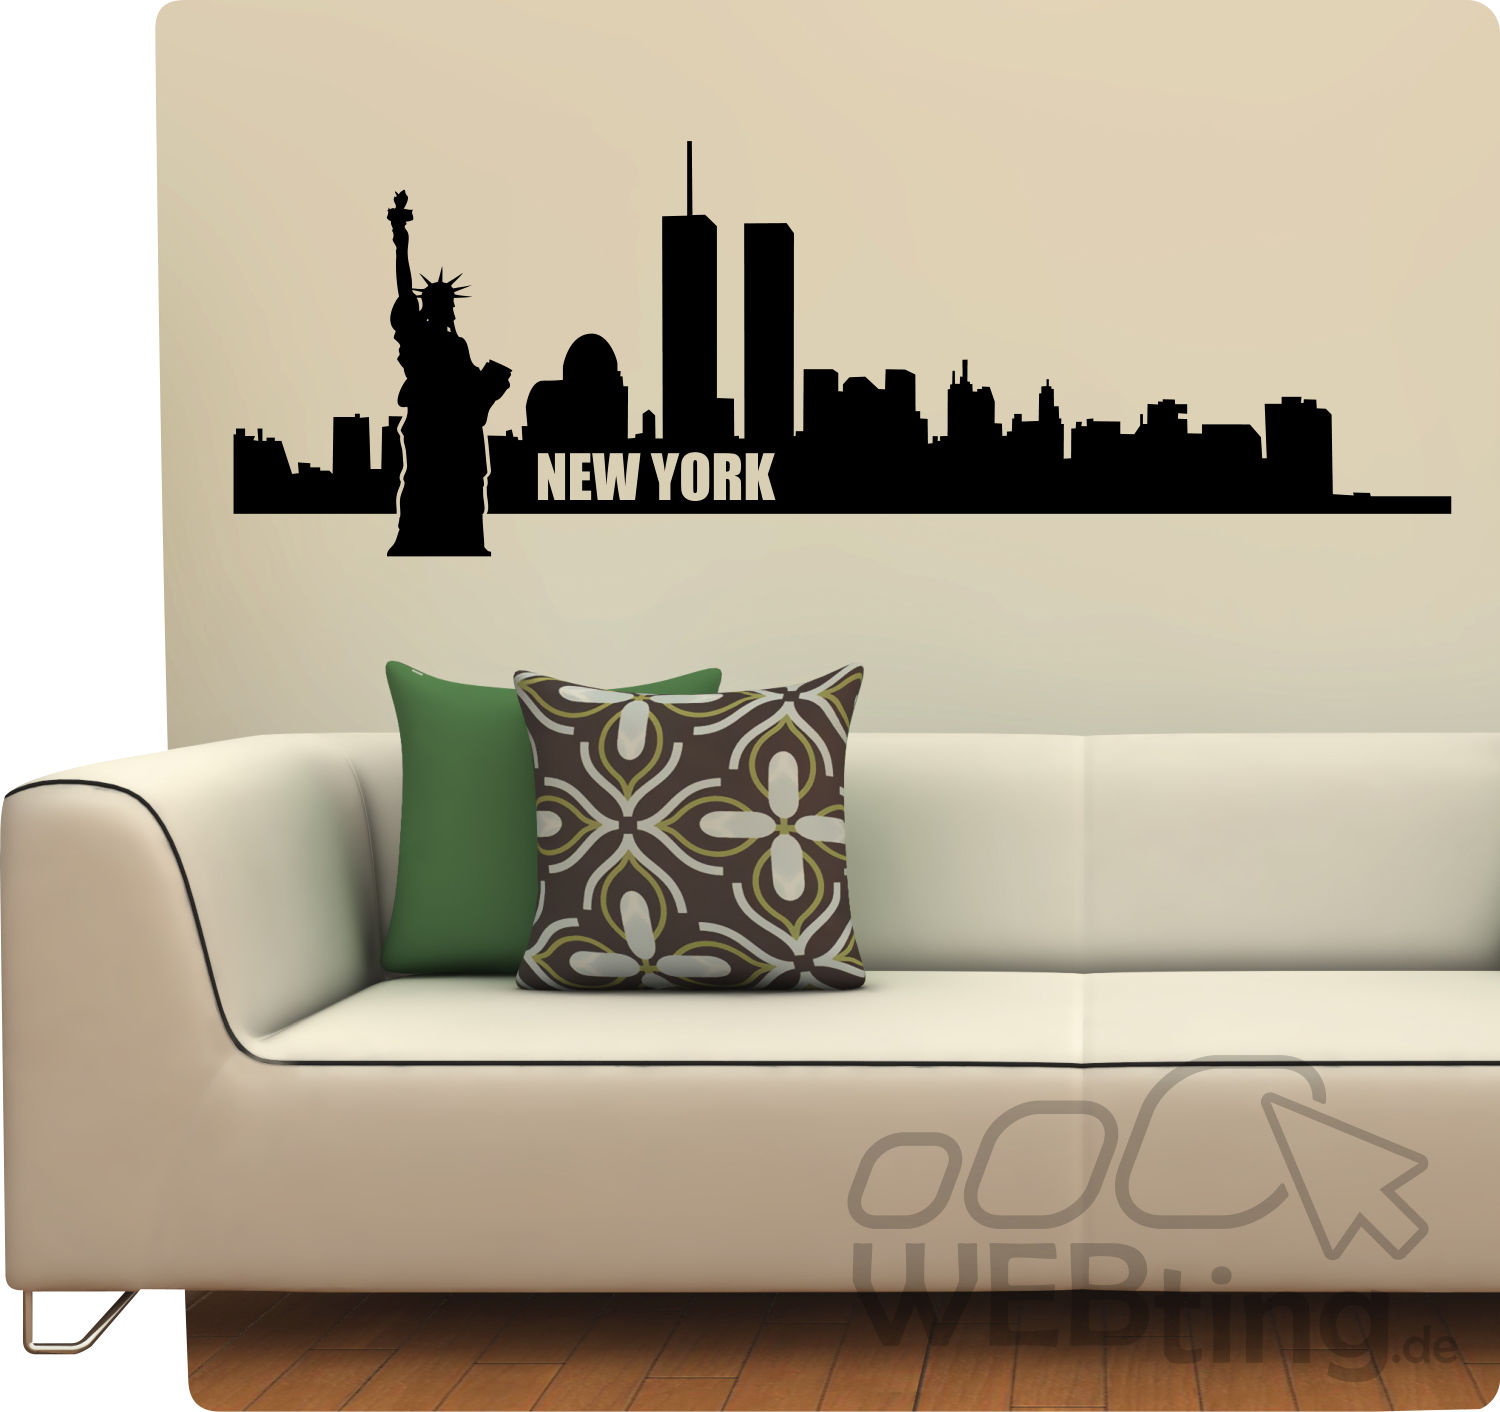 xxl wandtattoo skyline new york usa wandaufkleber. Black Bedroom Furniture Sets. Home Design Ideas